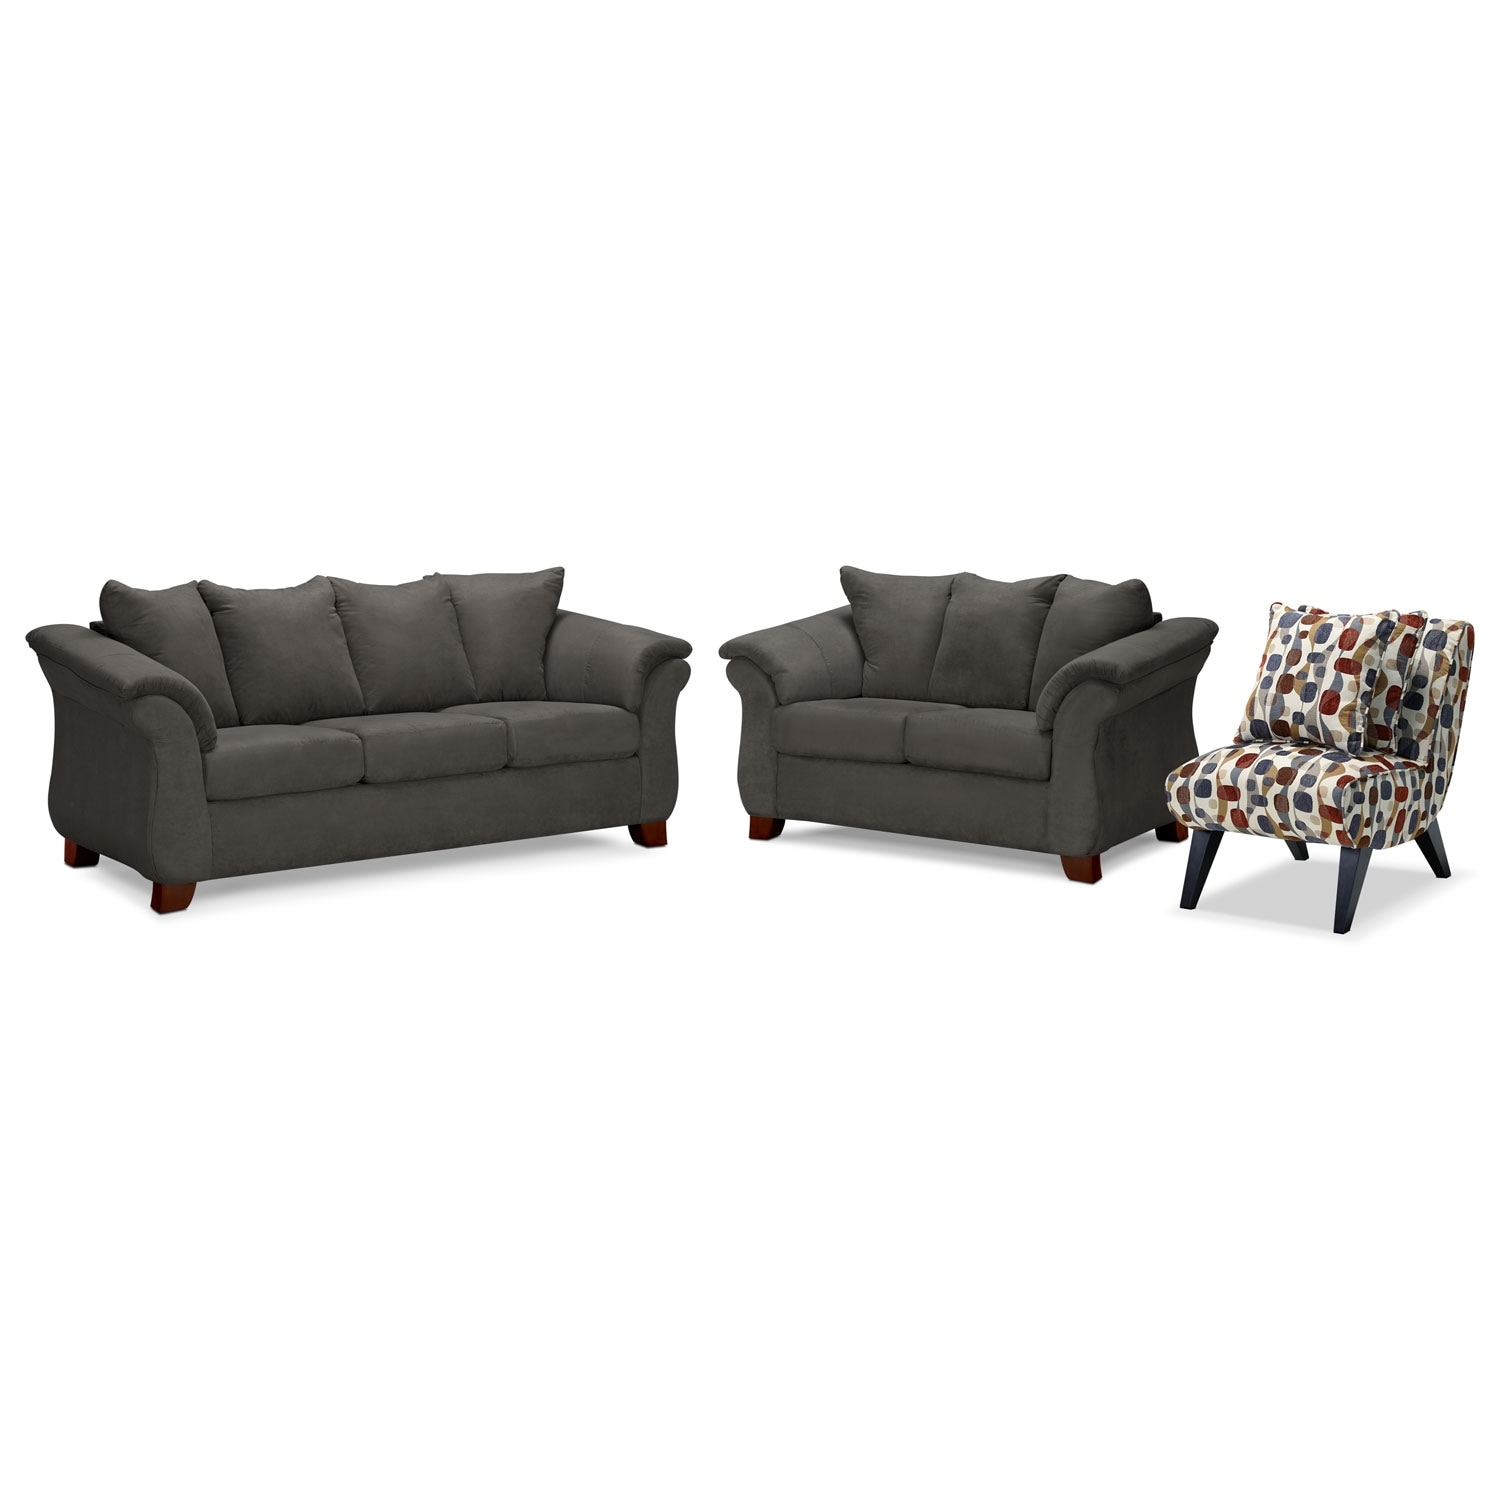 Living Room Furniture - Adrian Graphite 3 Pc. Living Room w/ Accent Chair